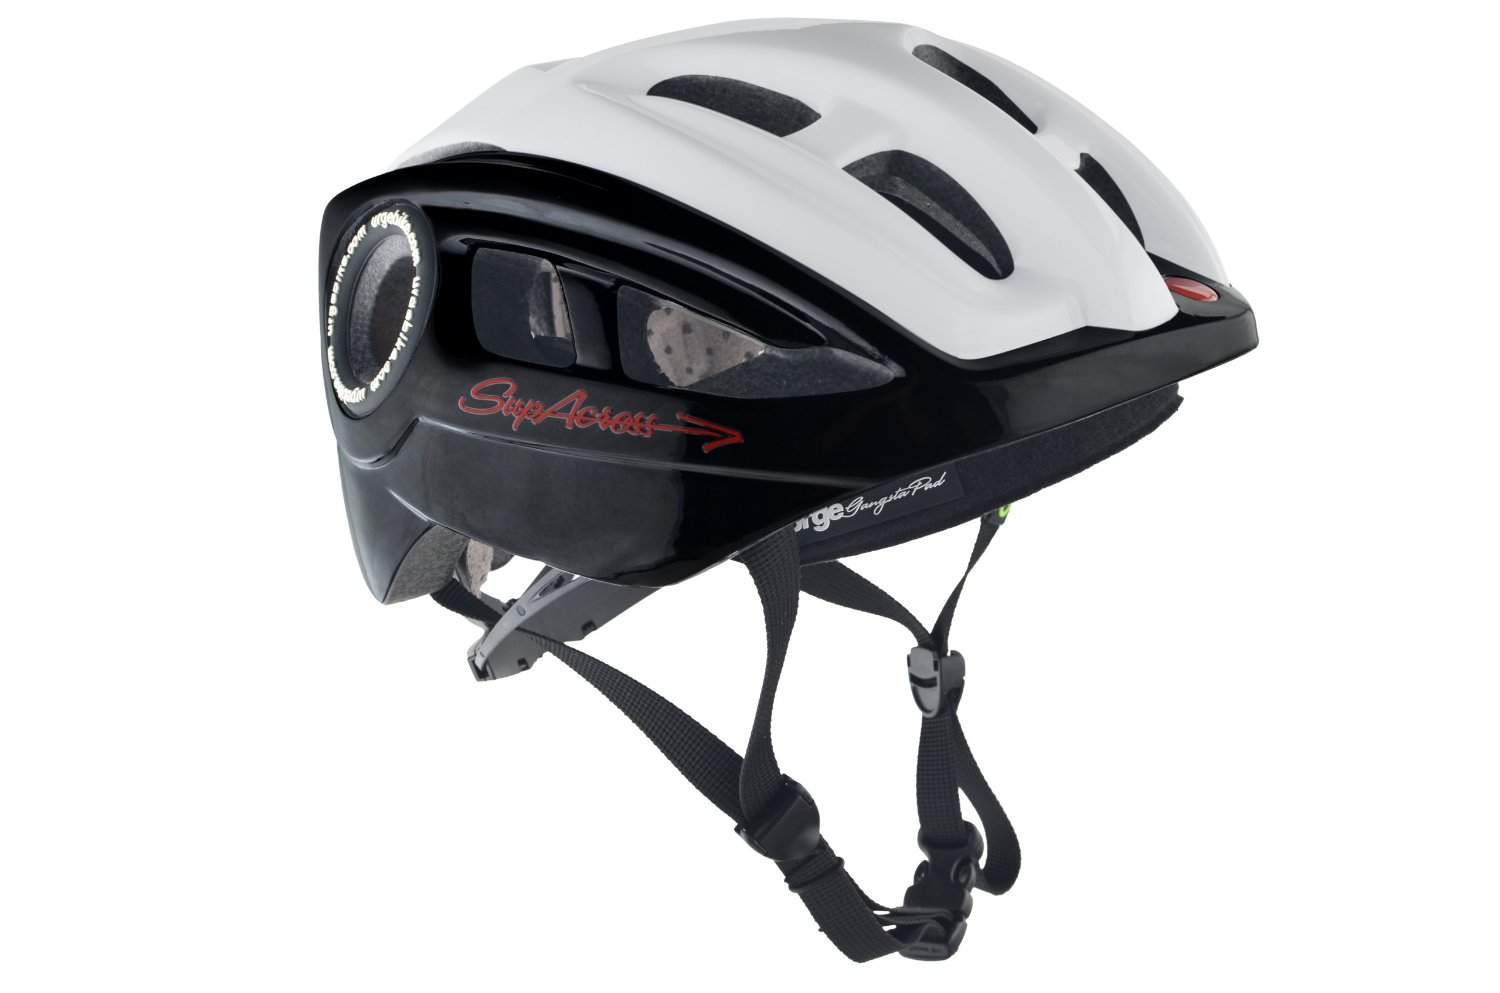 Colors of Urge Bike Products Bicycle Helmets